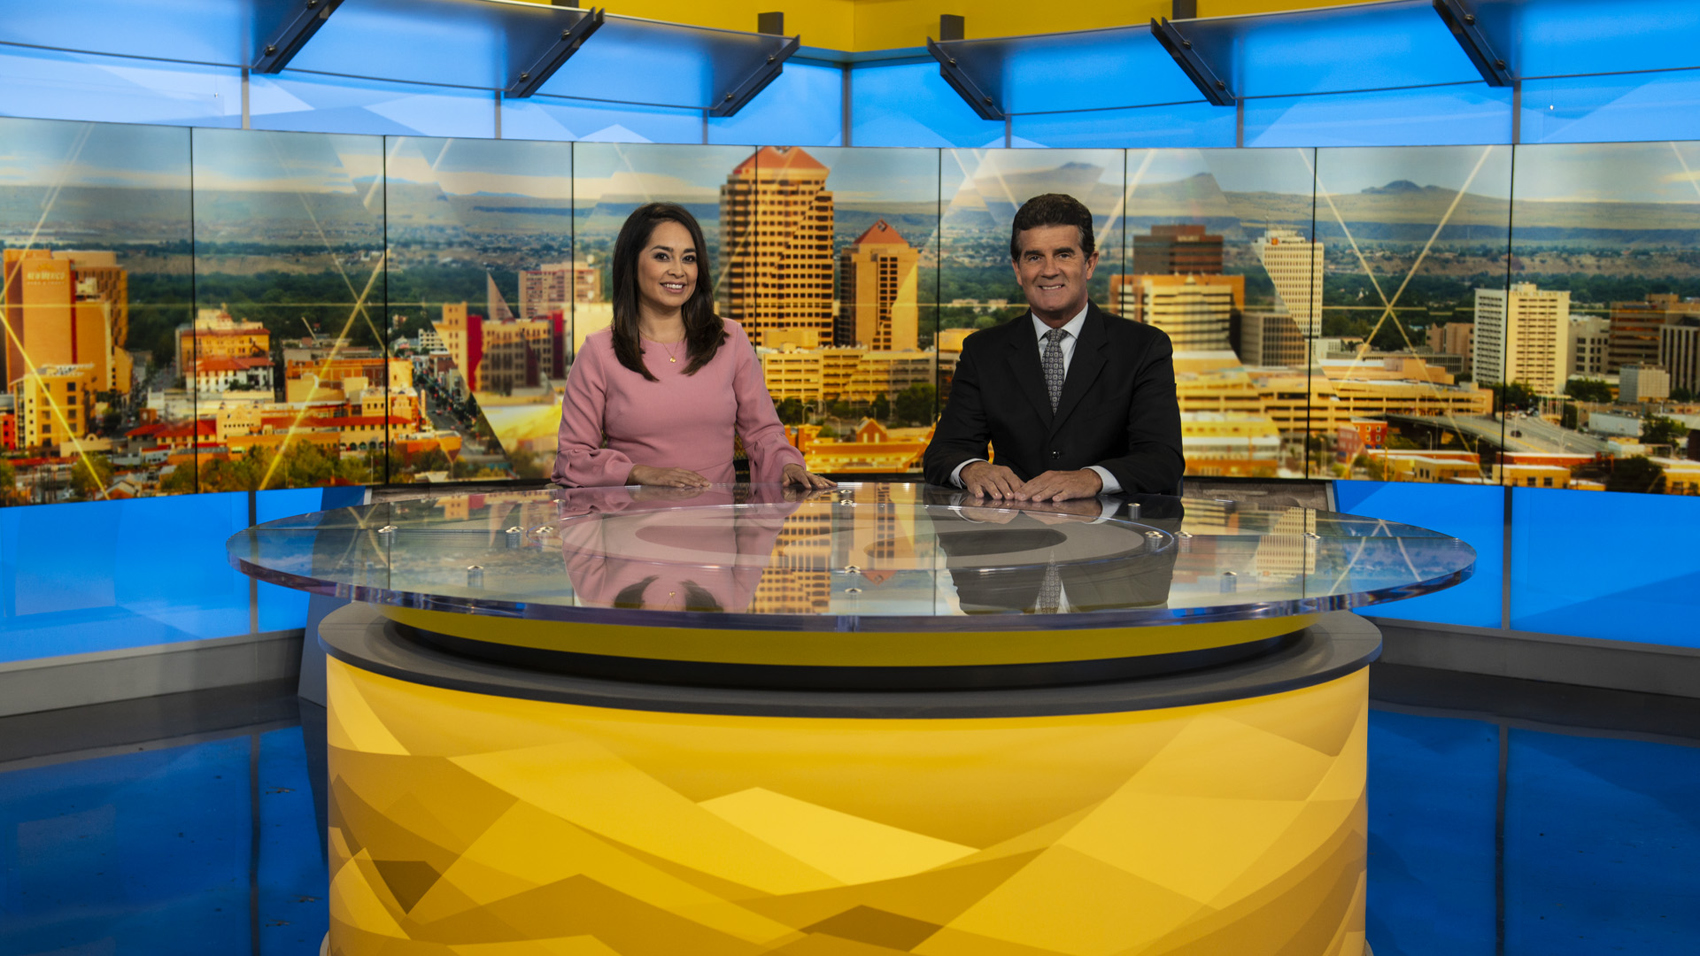 ncs_KOAT-TV-Studio-Devlin_00002